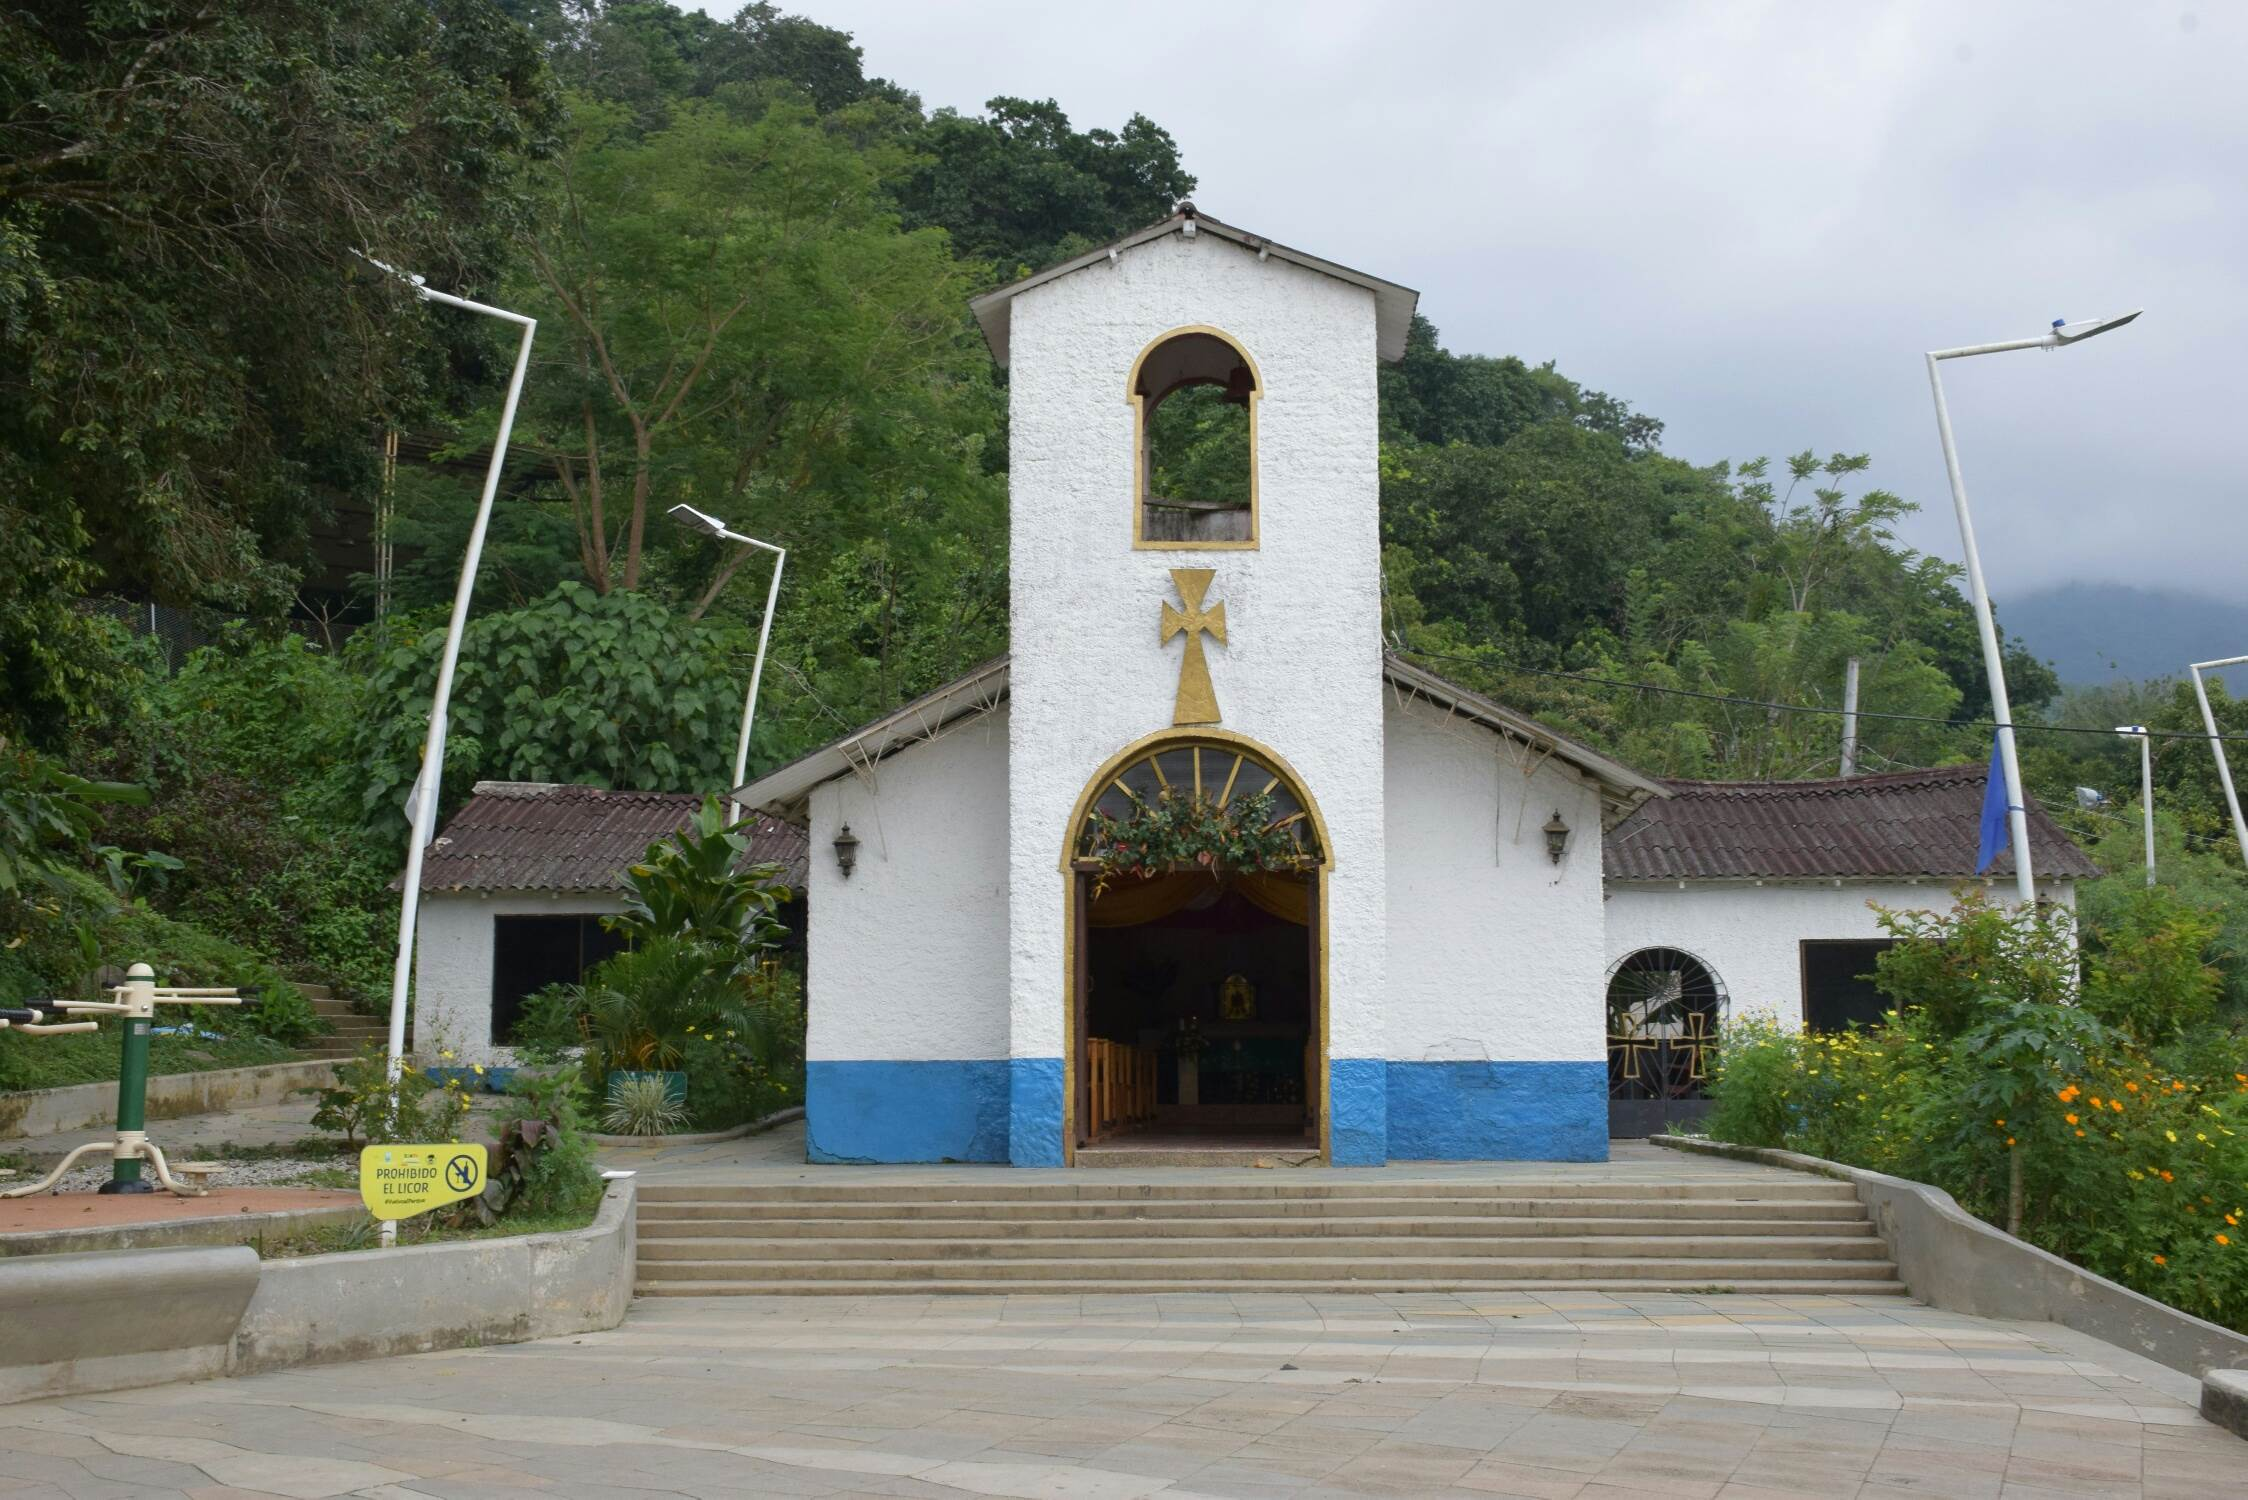 Going from Santa Marta to Minca you will see this church